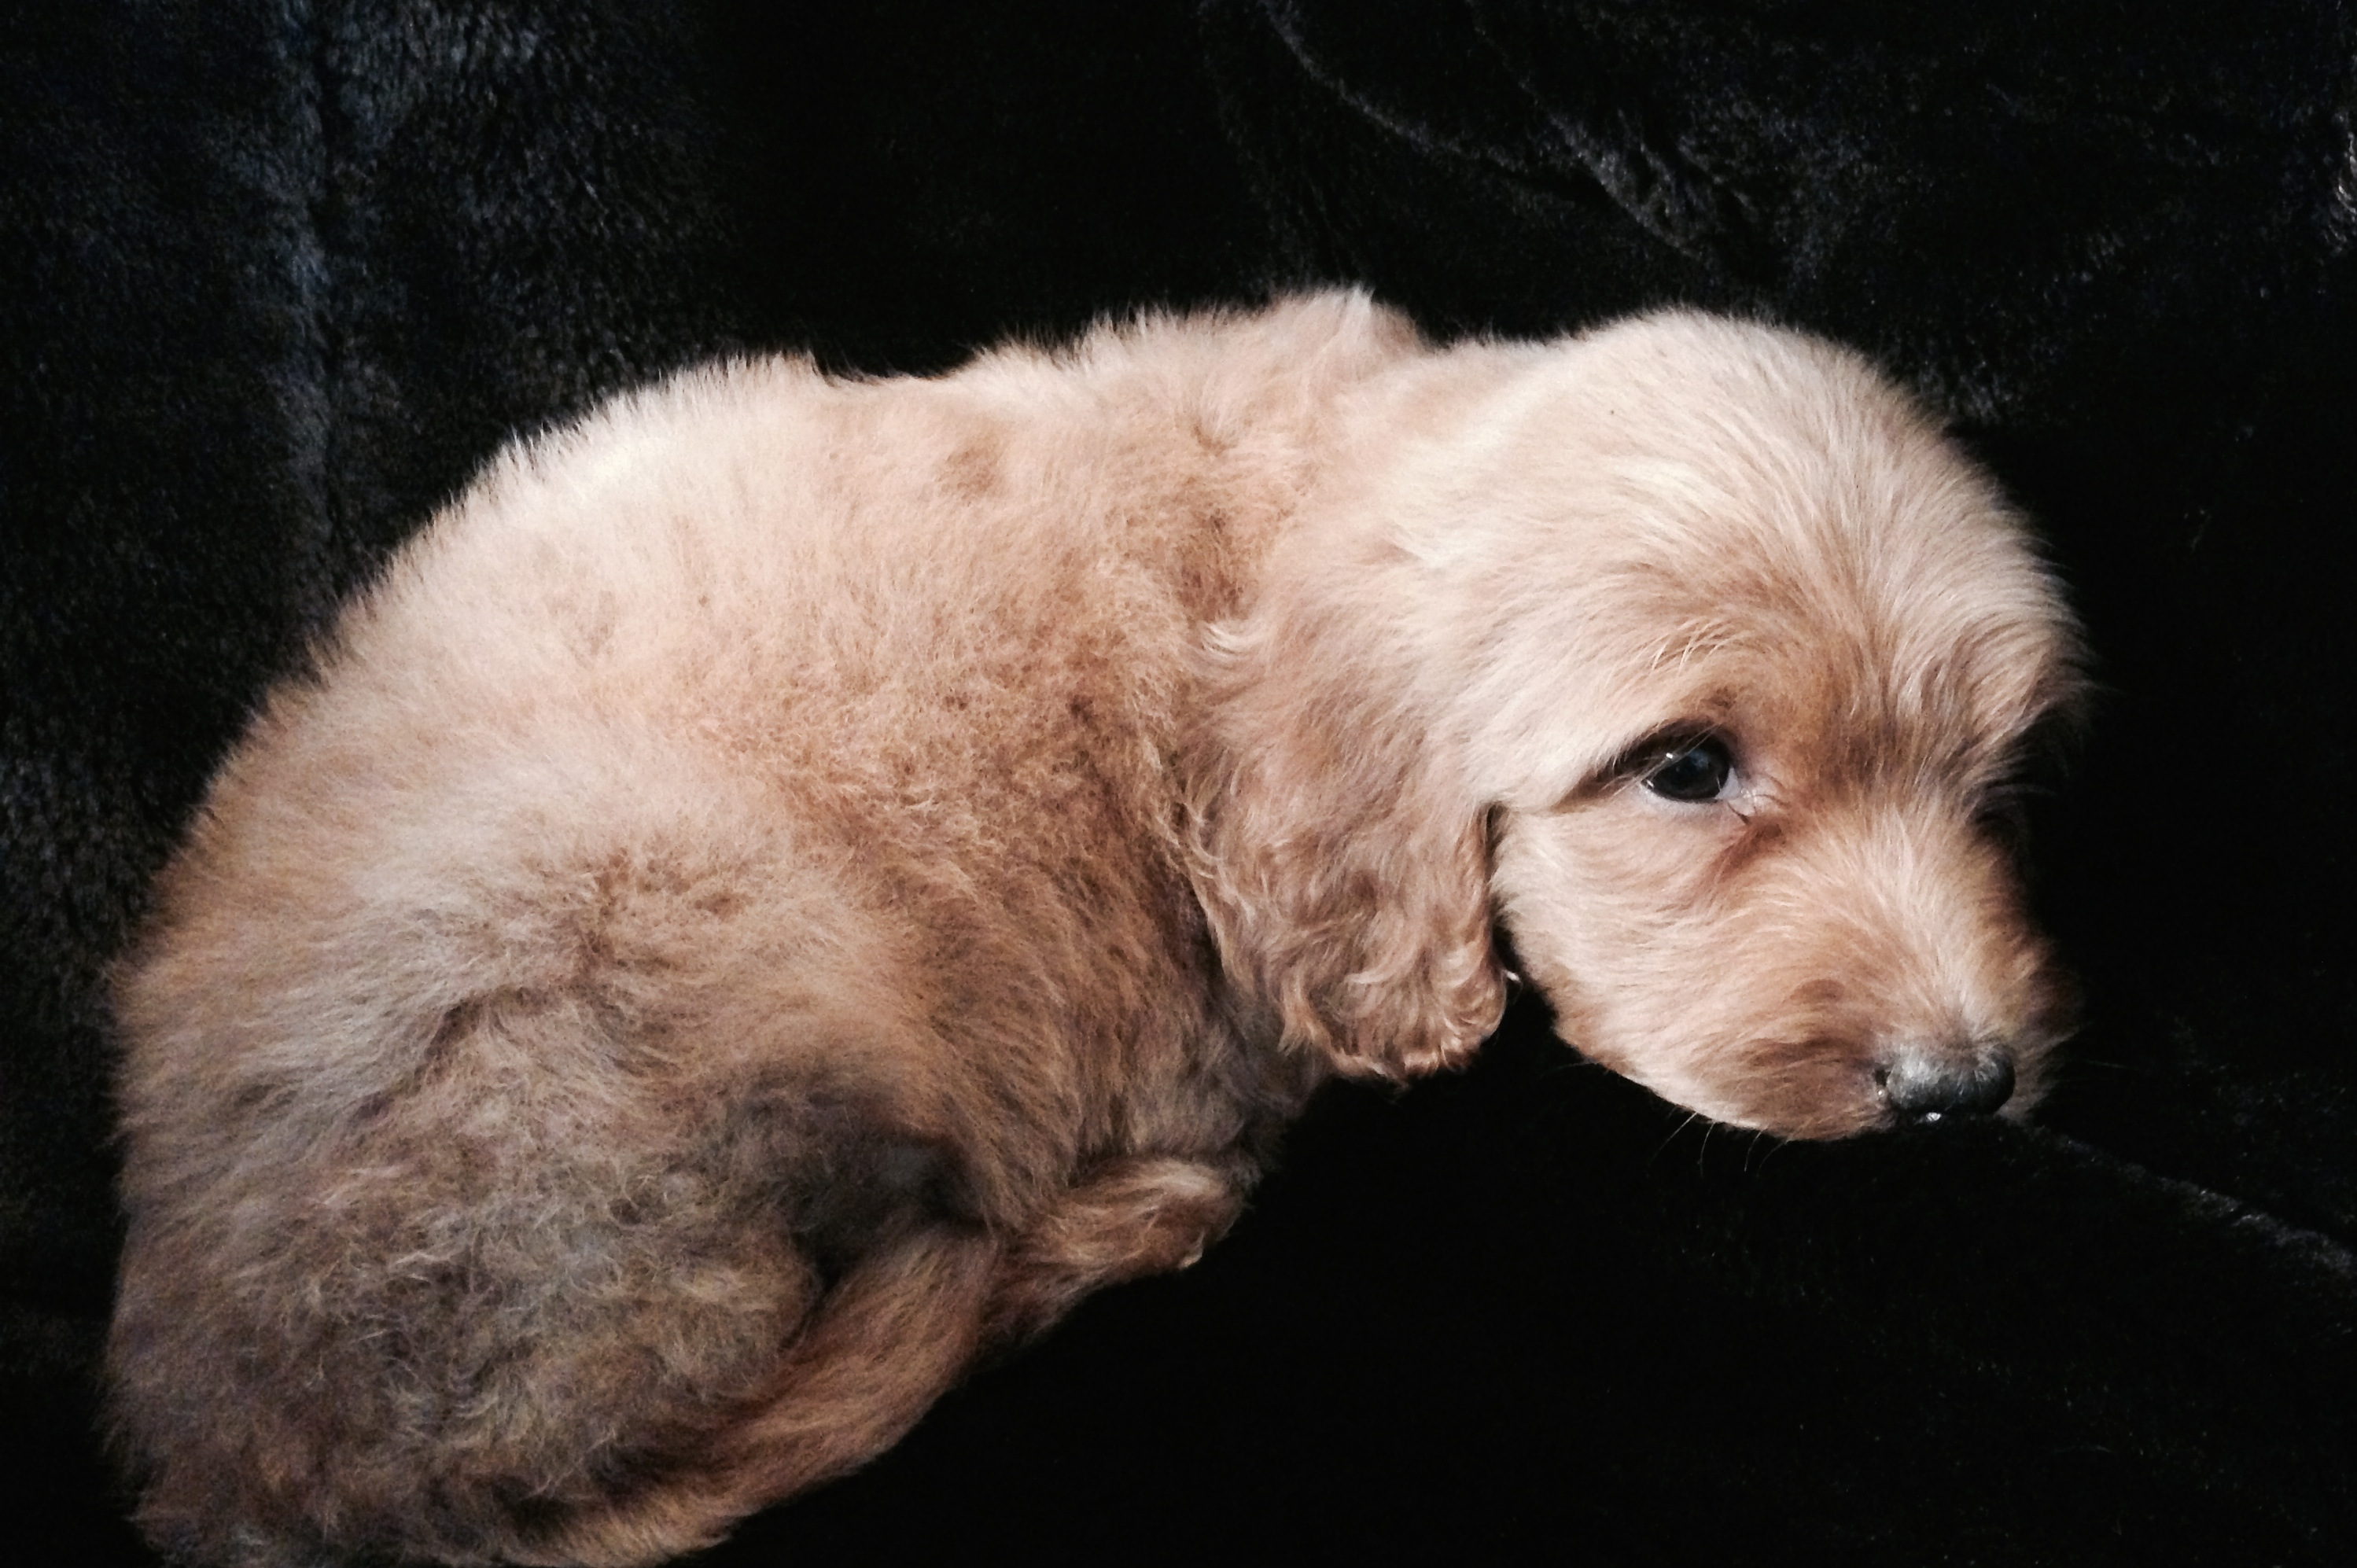 Labradoodle puppies for sale, San Antonio Tx Dandy Doodles and Poodles